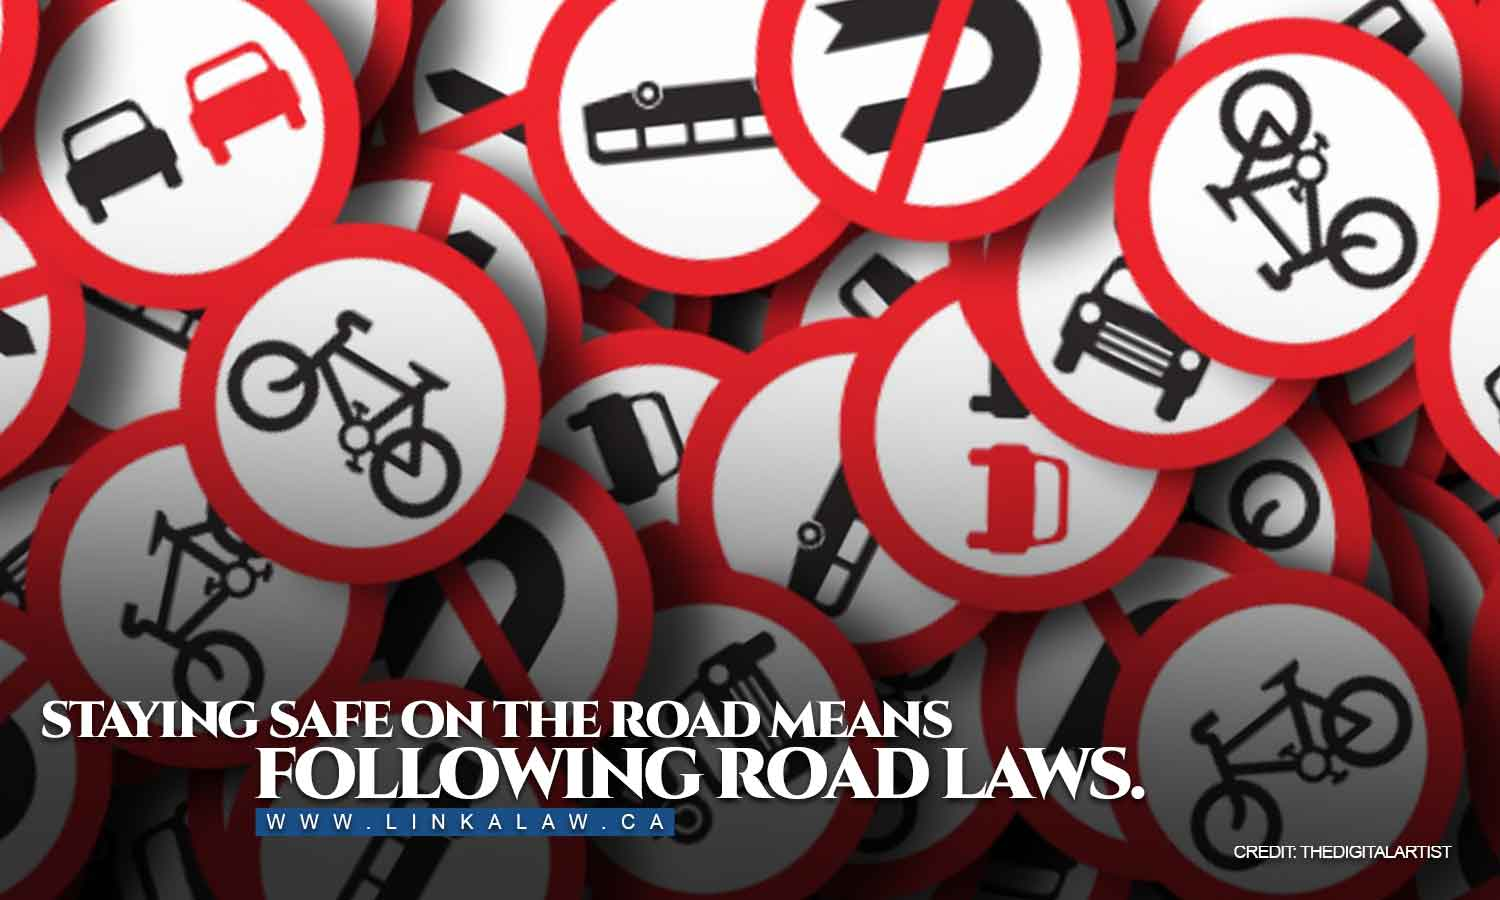 Staying safe on the road means following road laws.